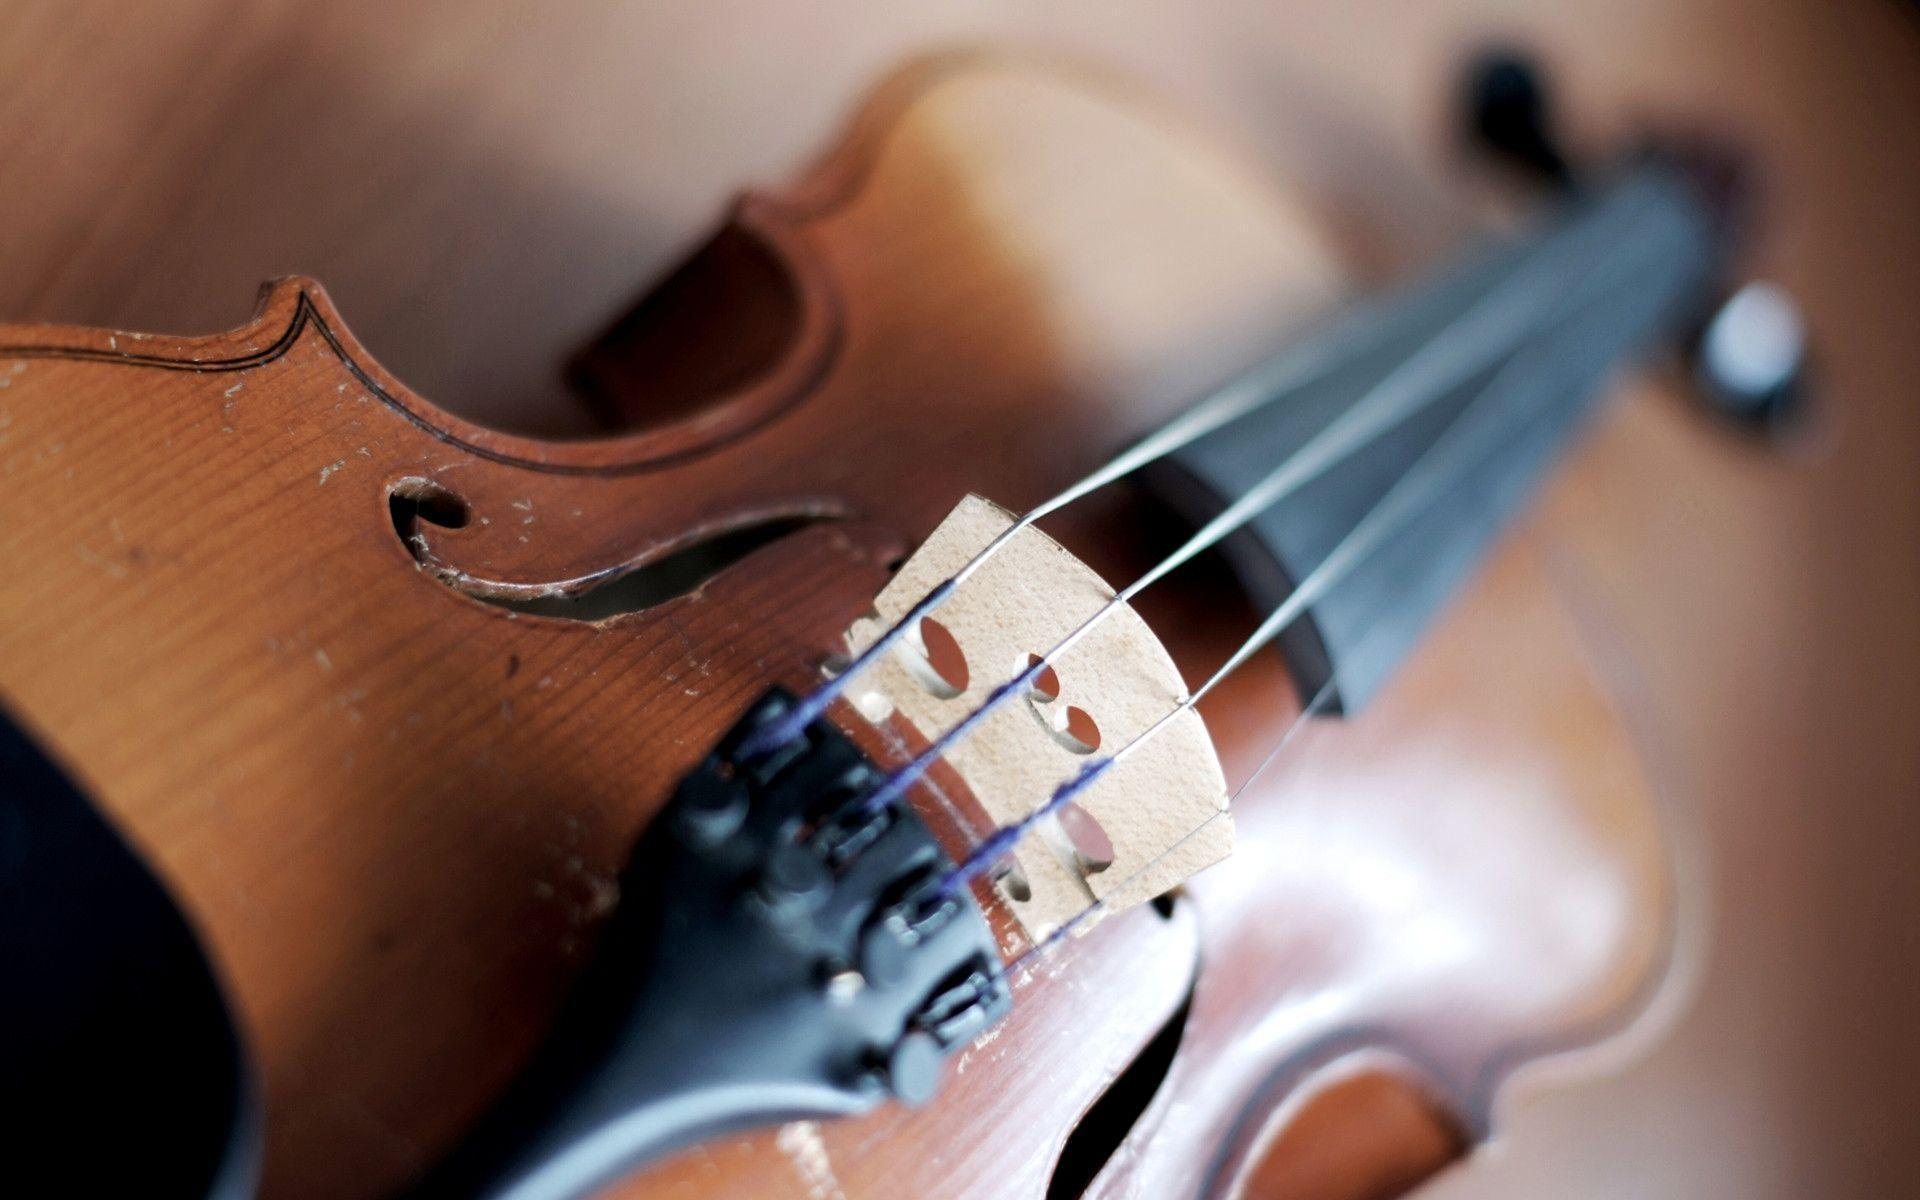 Violin Music Wallpaper | Free HD Desktop Wallpaper | Viewhdwall.